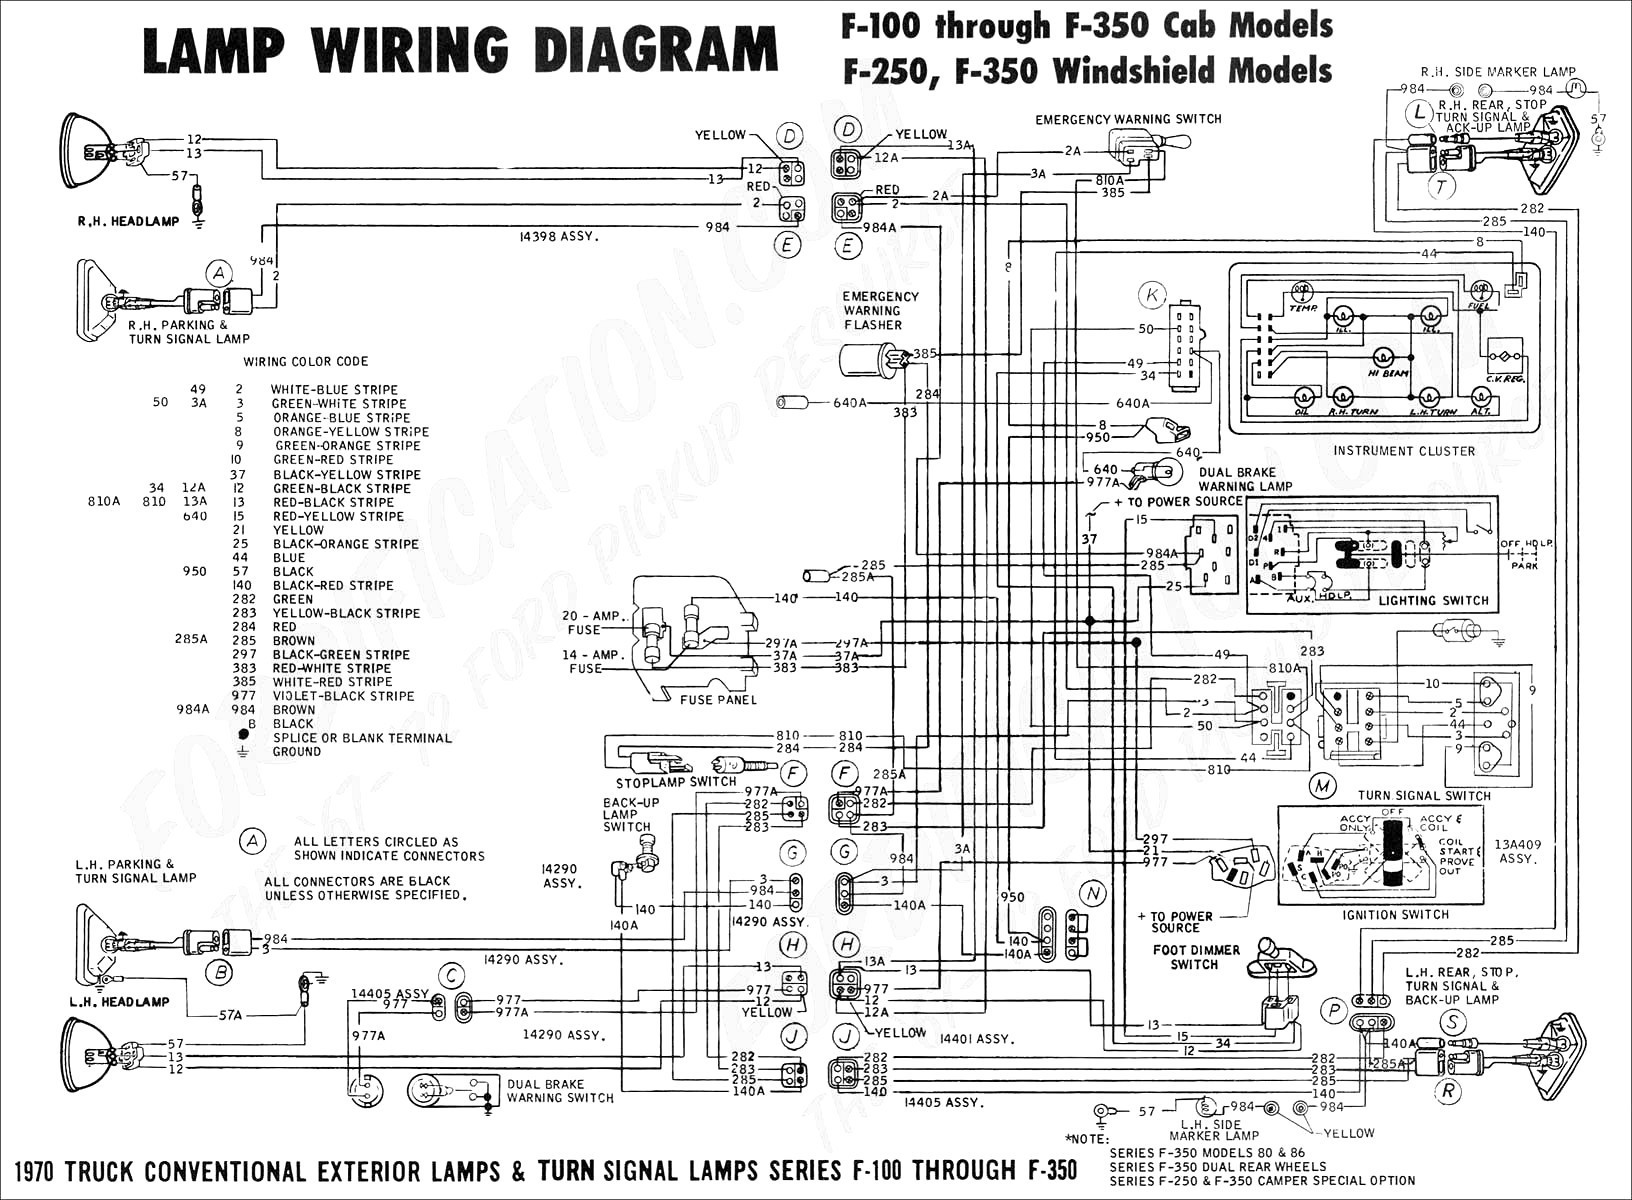 1999 Cadillac Deville Wiring Diagram Opinions About Kenwood Kvt 696 Radio Electrical Diagrams Rh Wiringforall Today Relay Seville